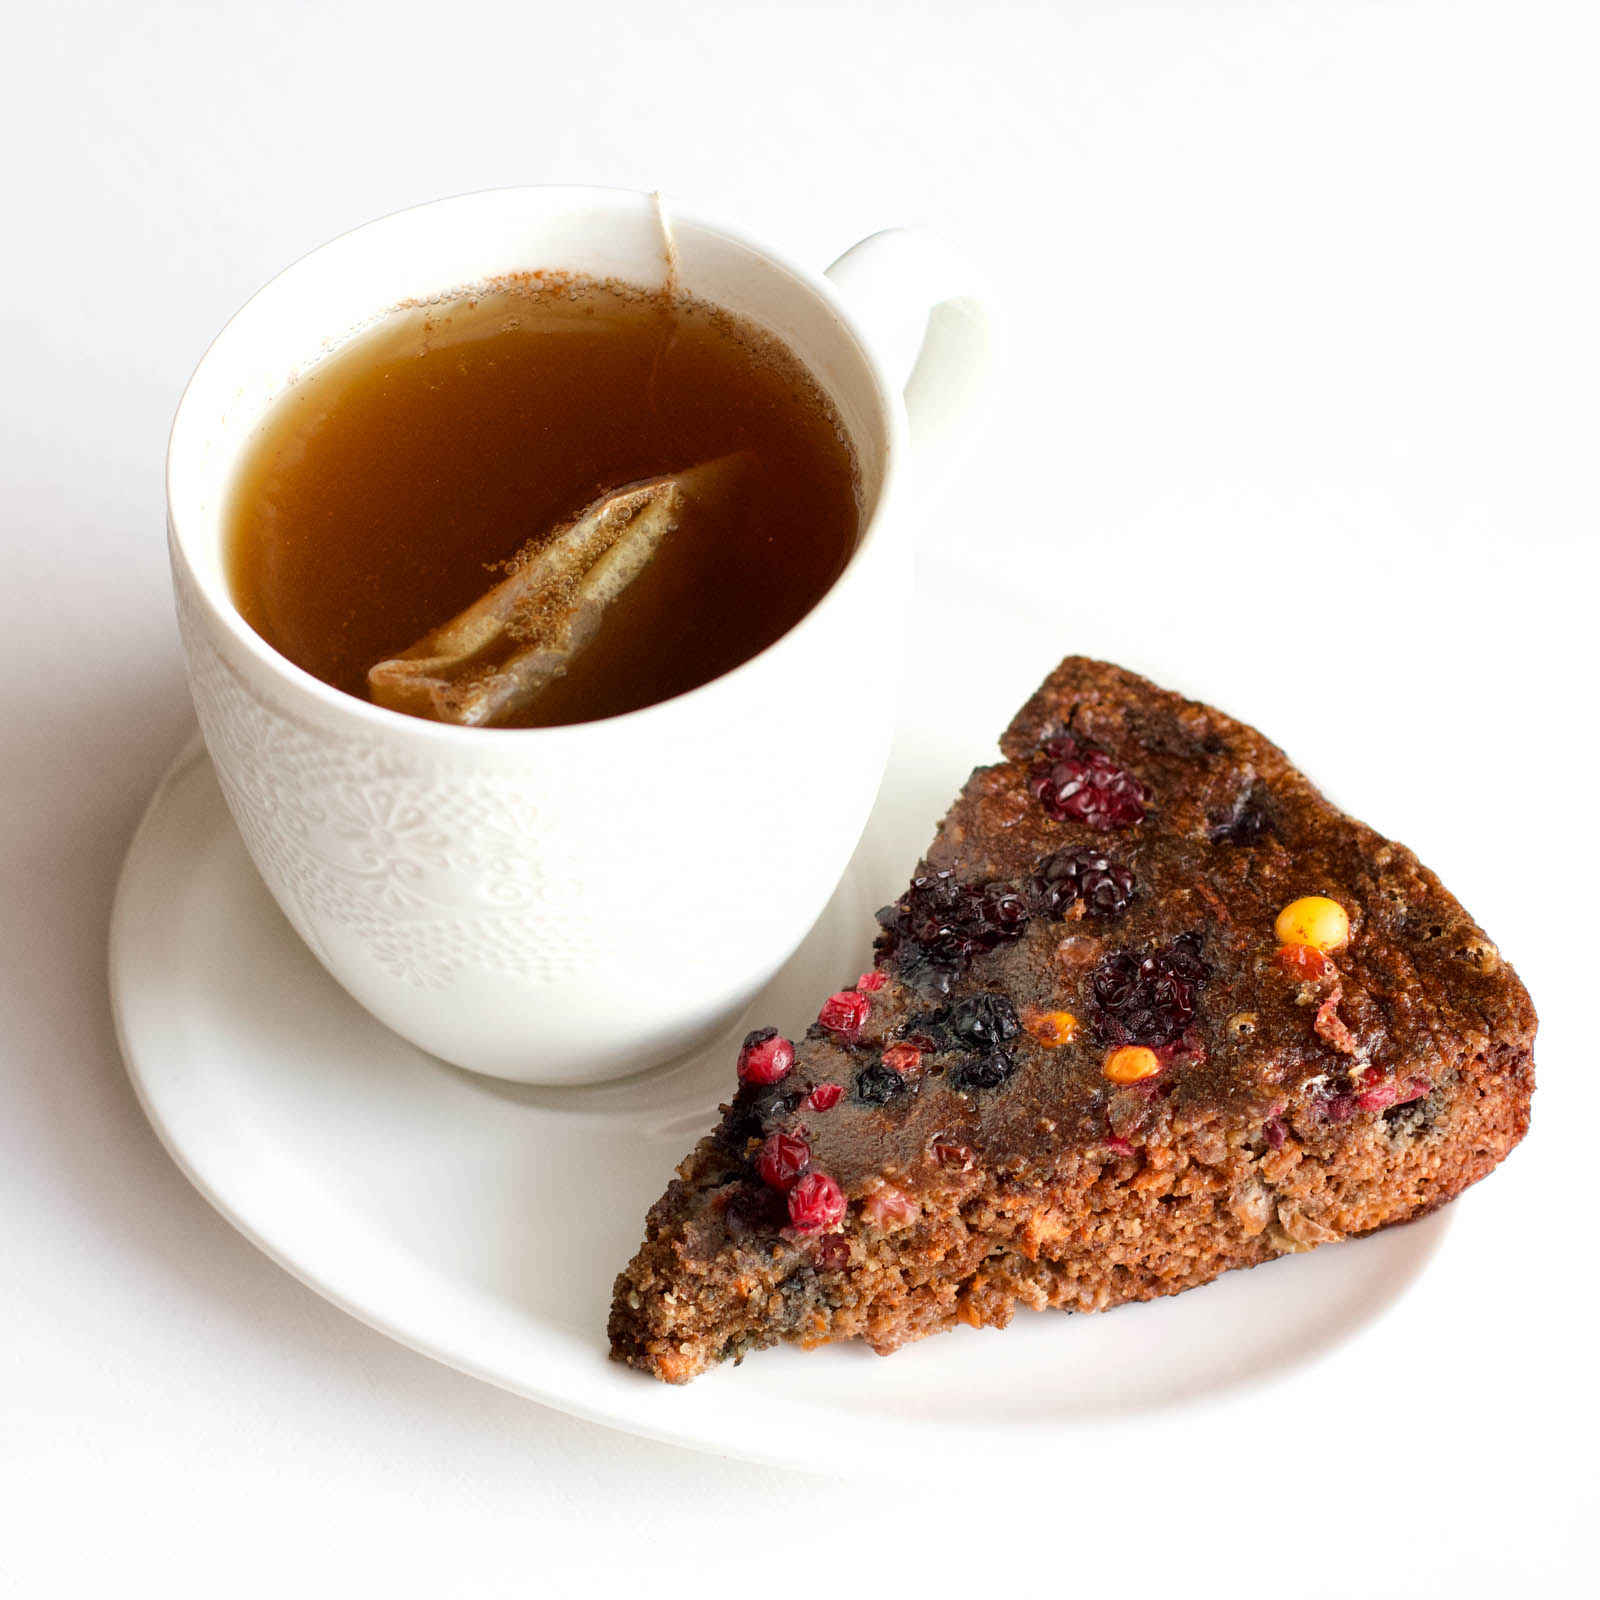 Single slice of Low-Carb Chocolate Cake with Berries on a plate and a cup of hot tea.